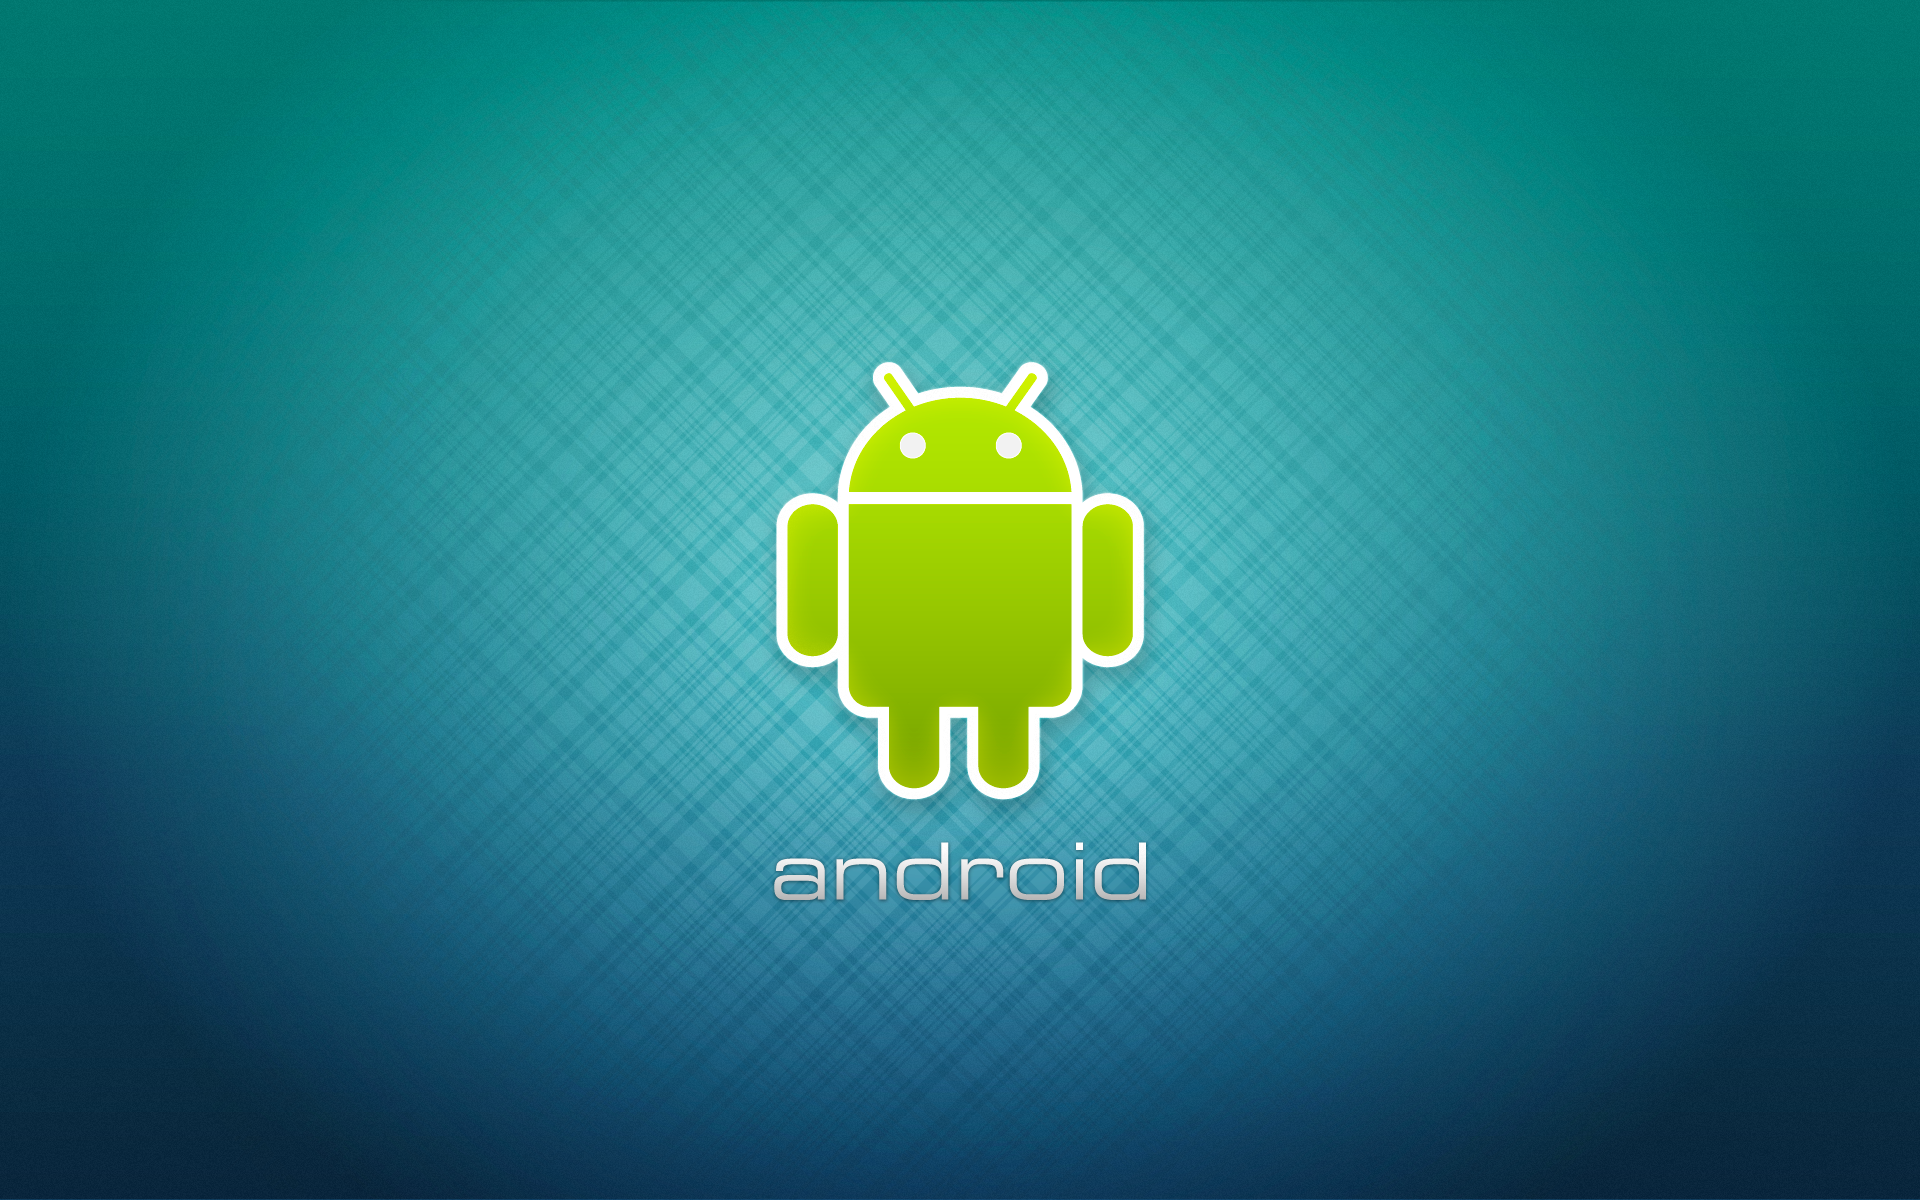 Android Backgrounds Wallpaper